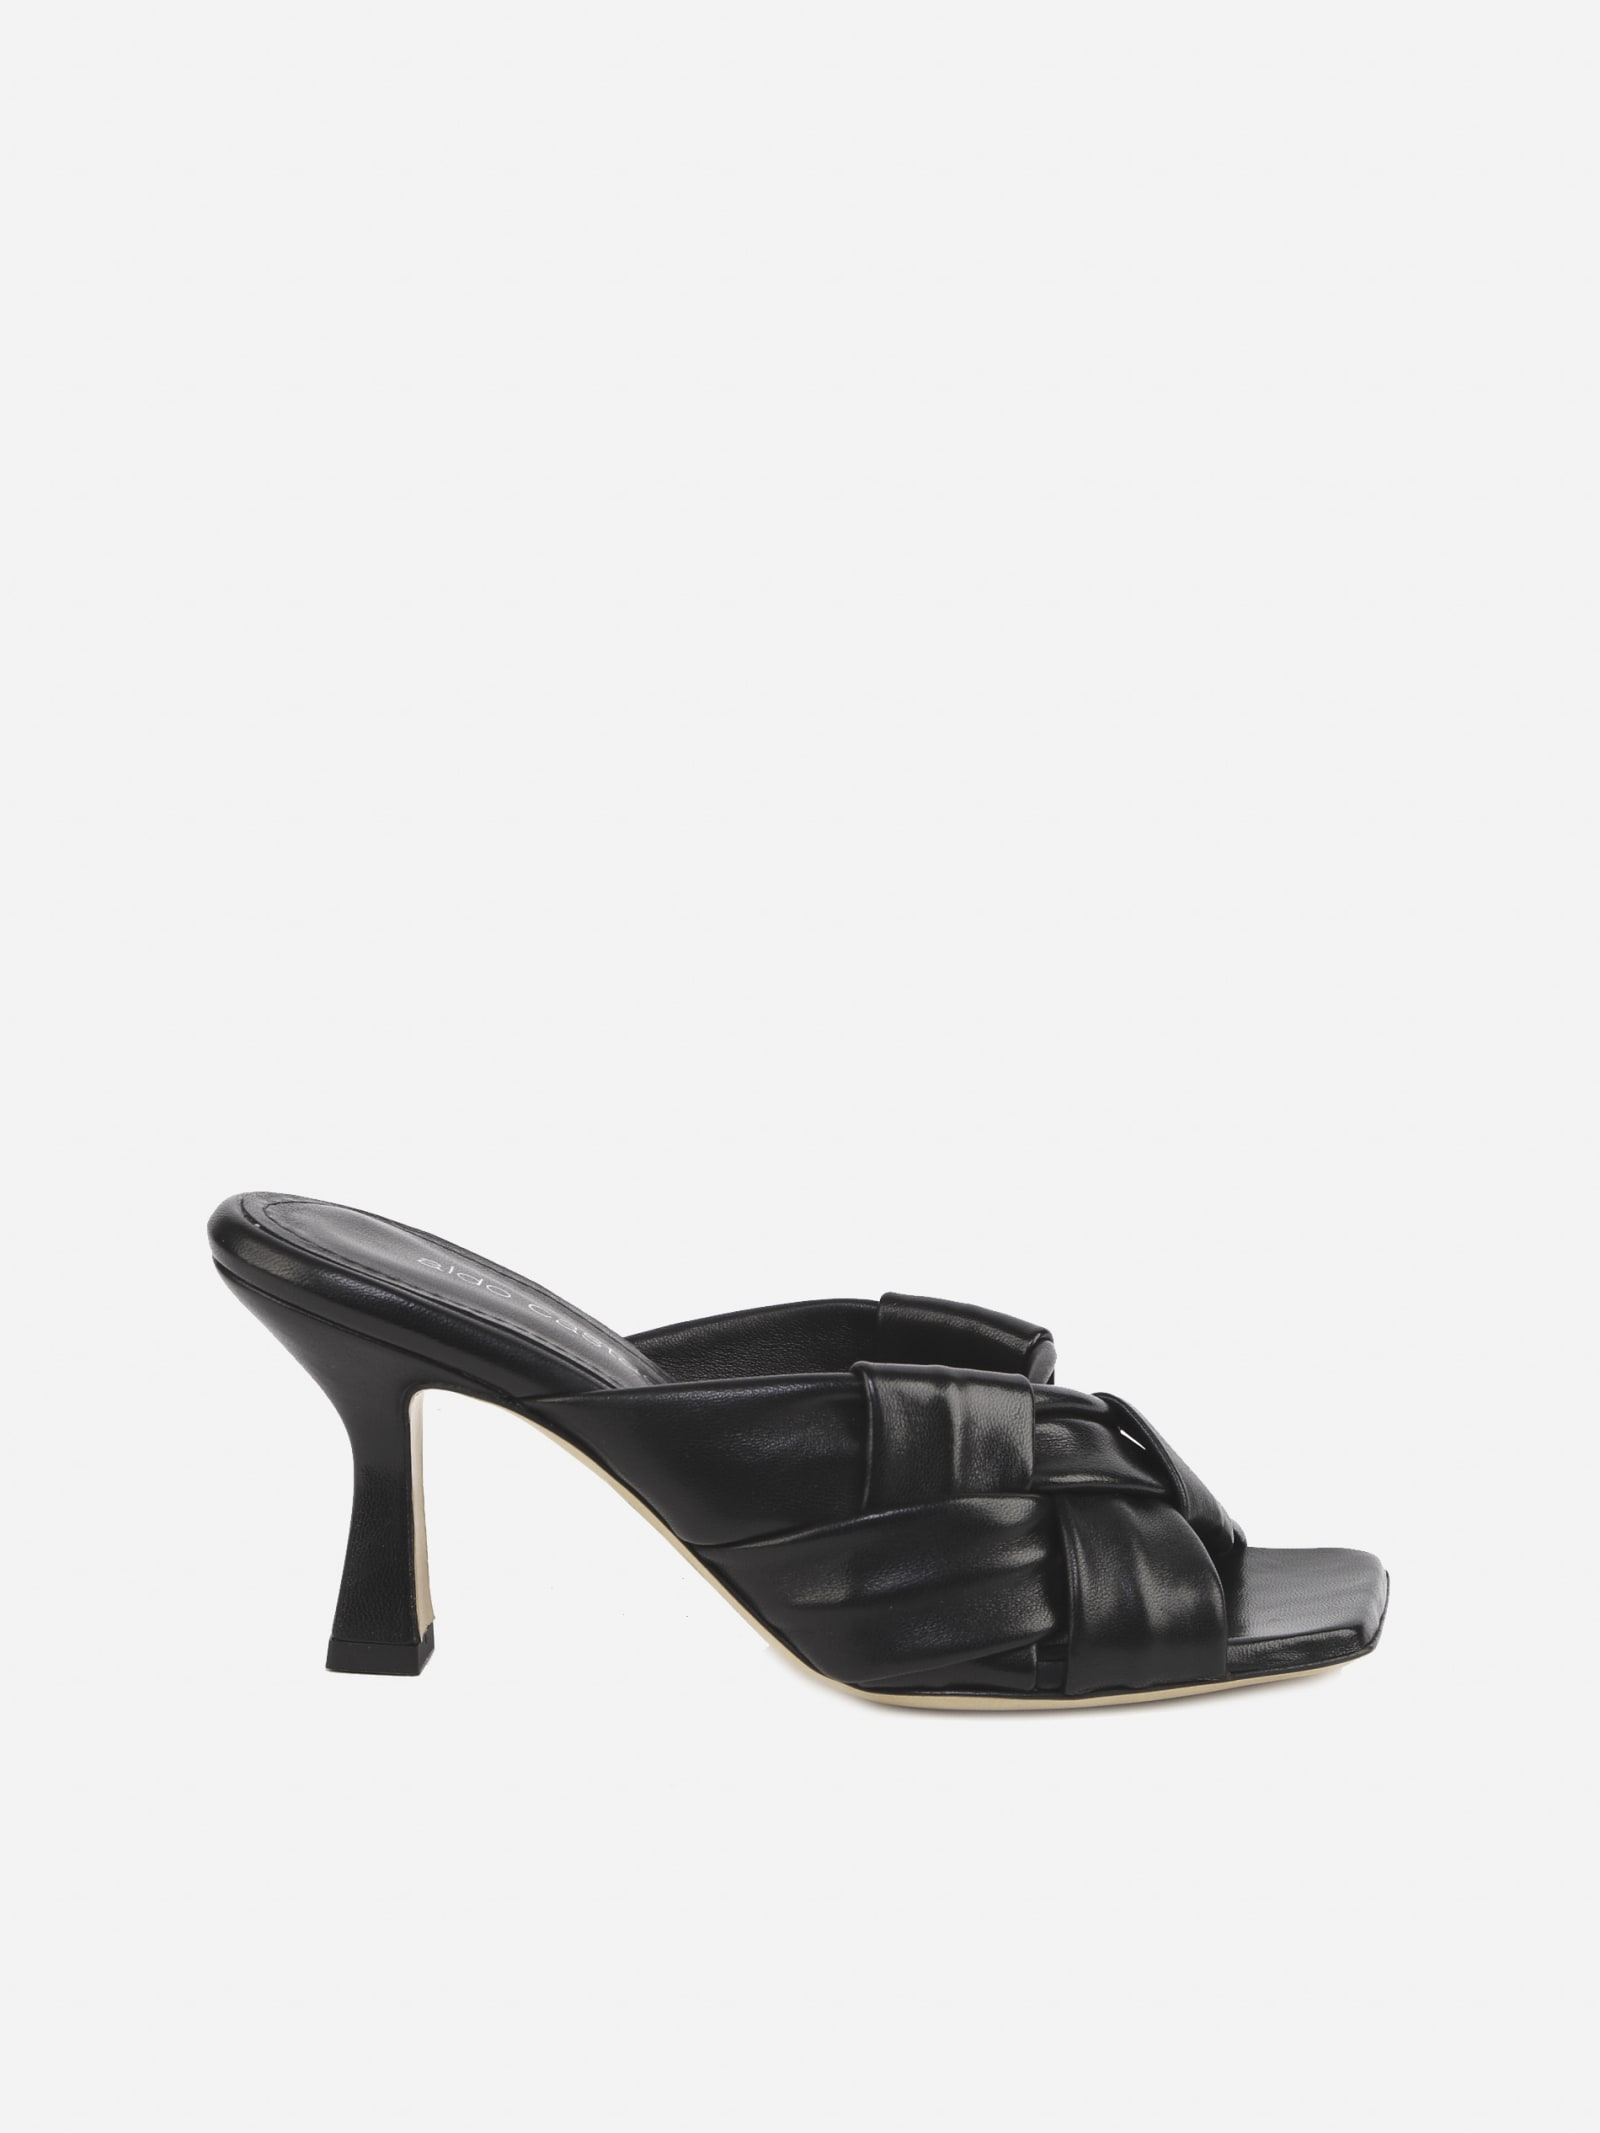 Flora Sandals In Leather With Woven Pattern